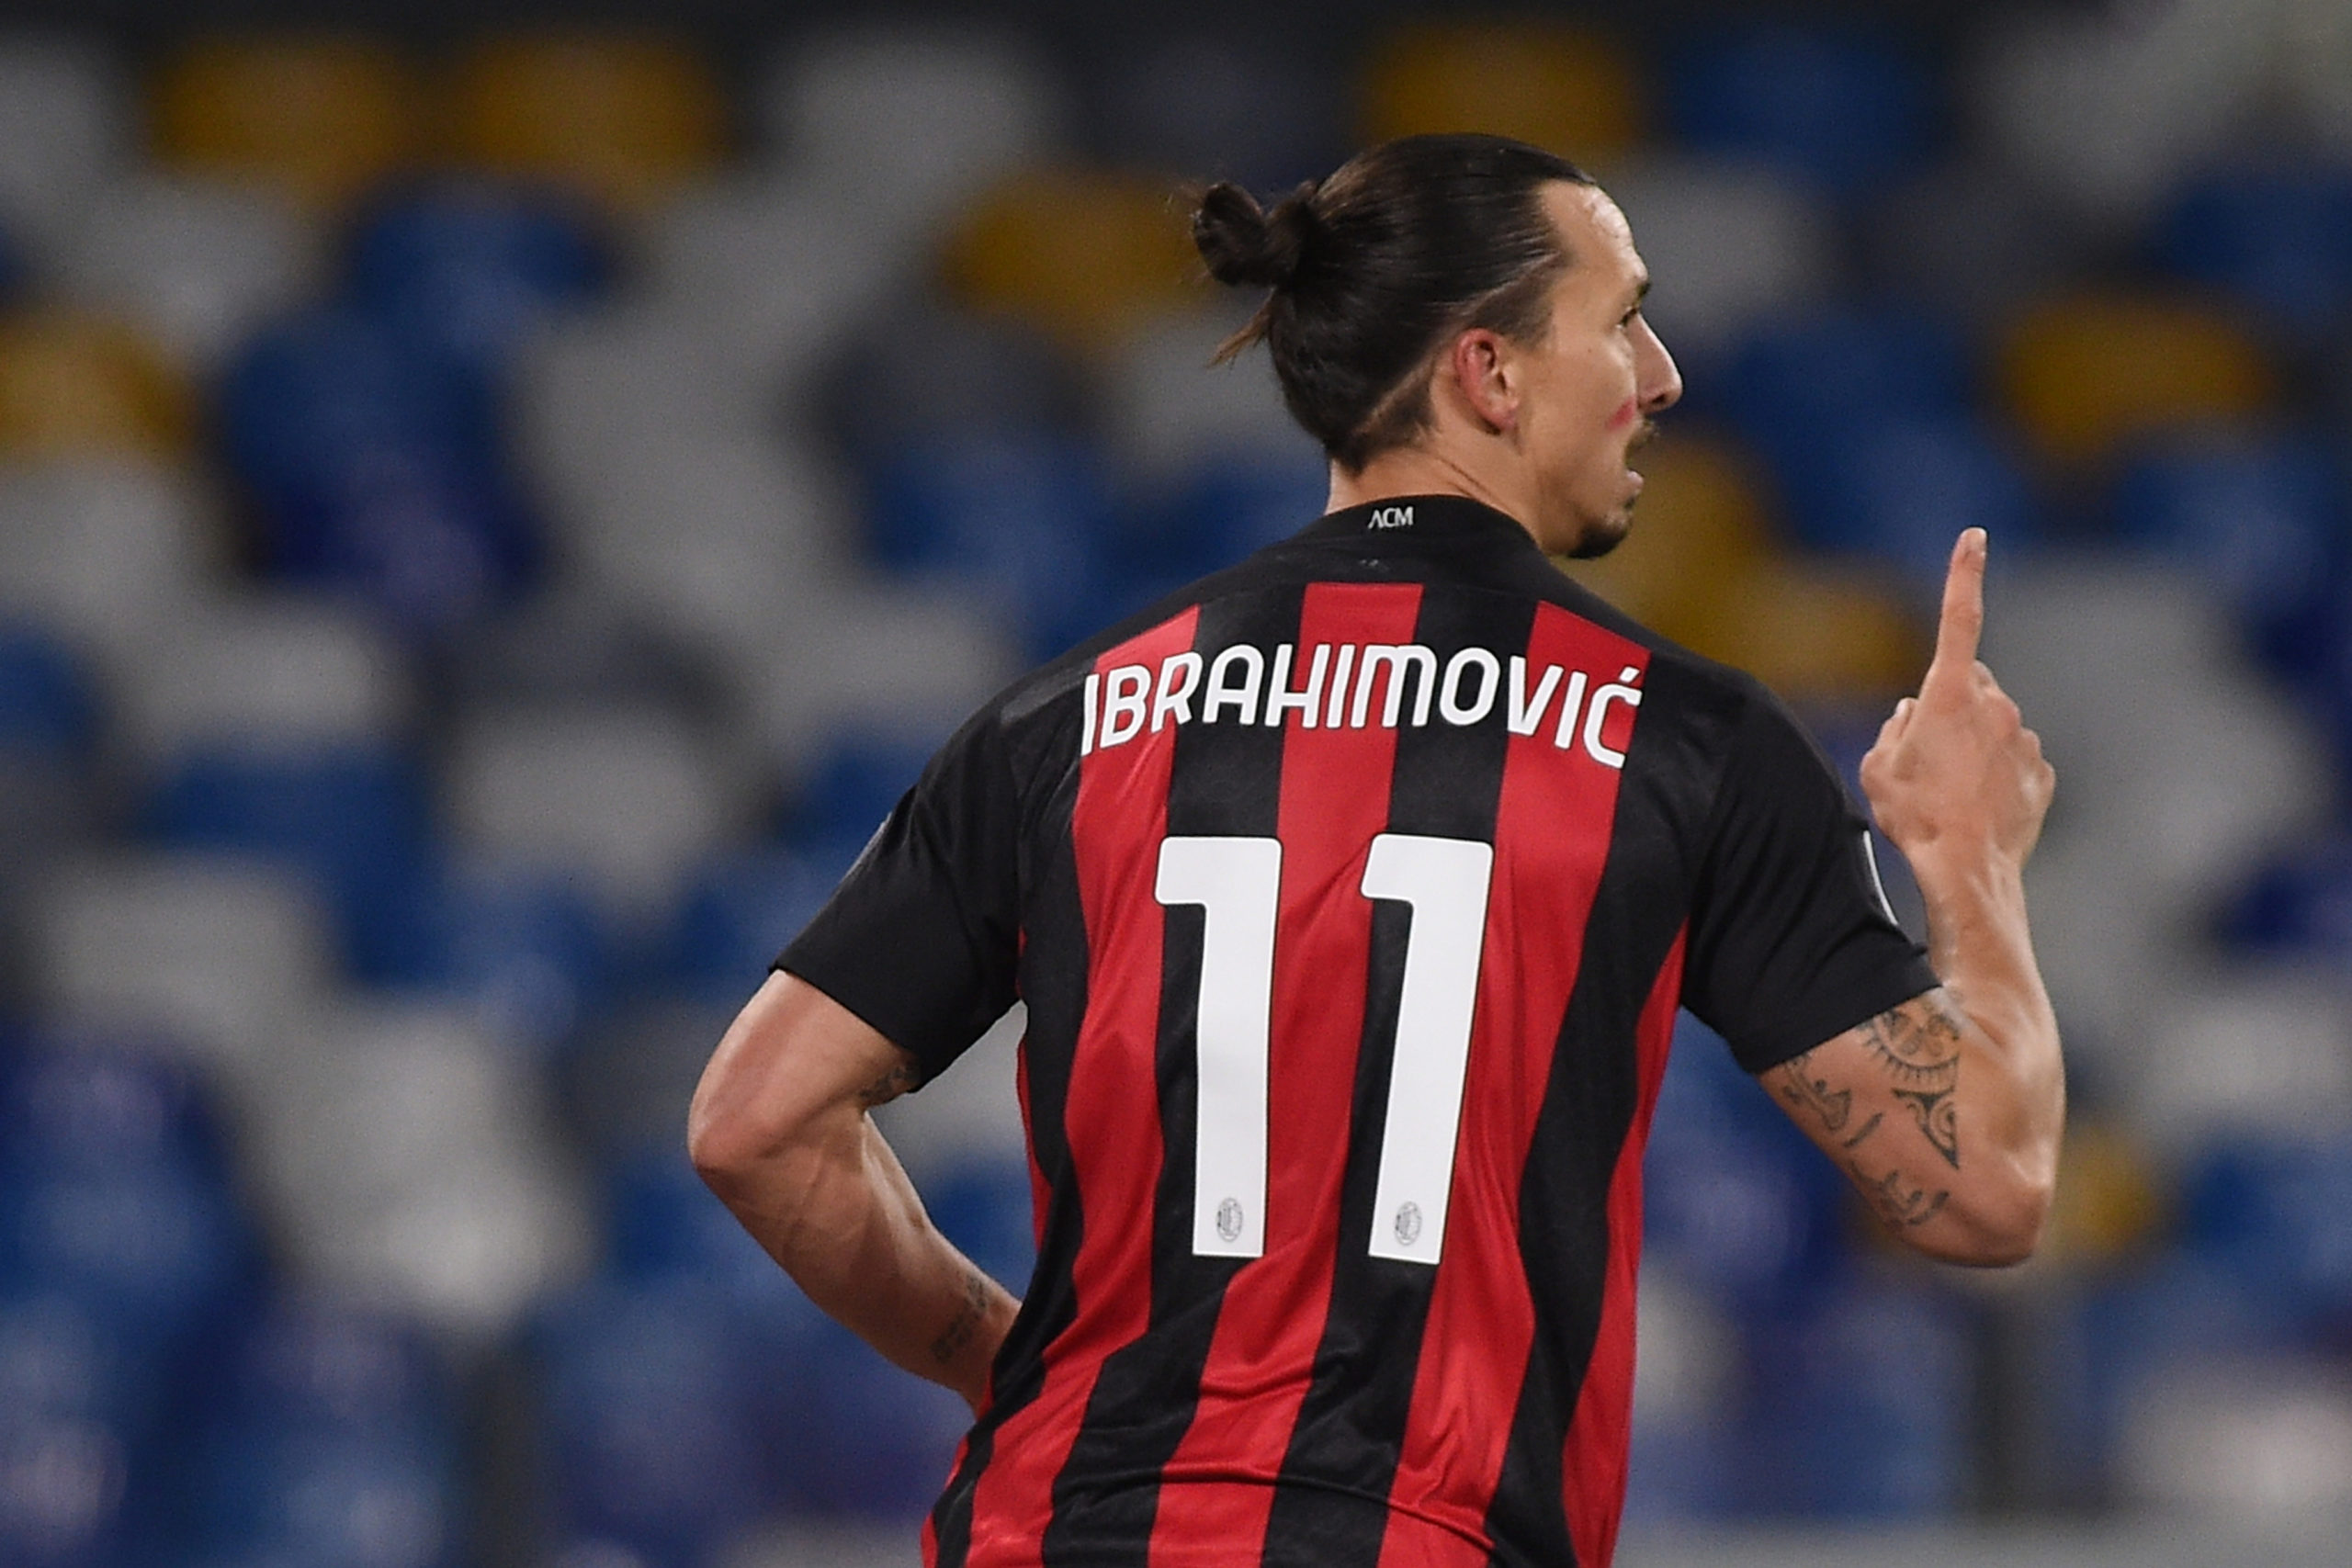 Zlatan Ibrahimovic will miss the Celtic game